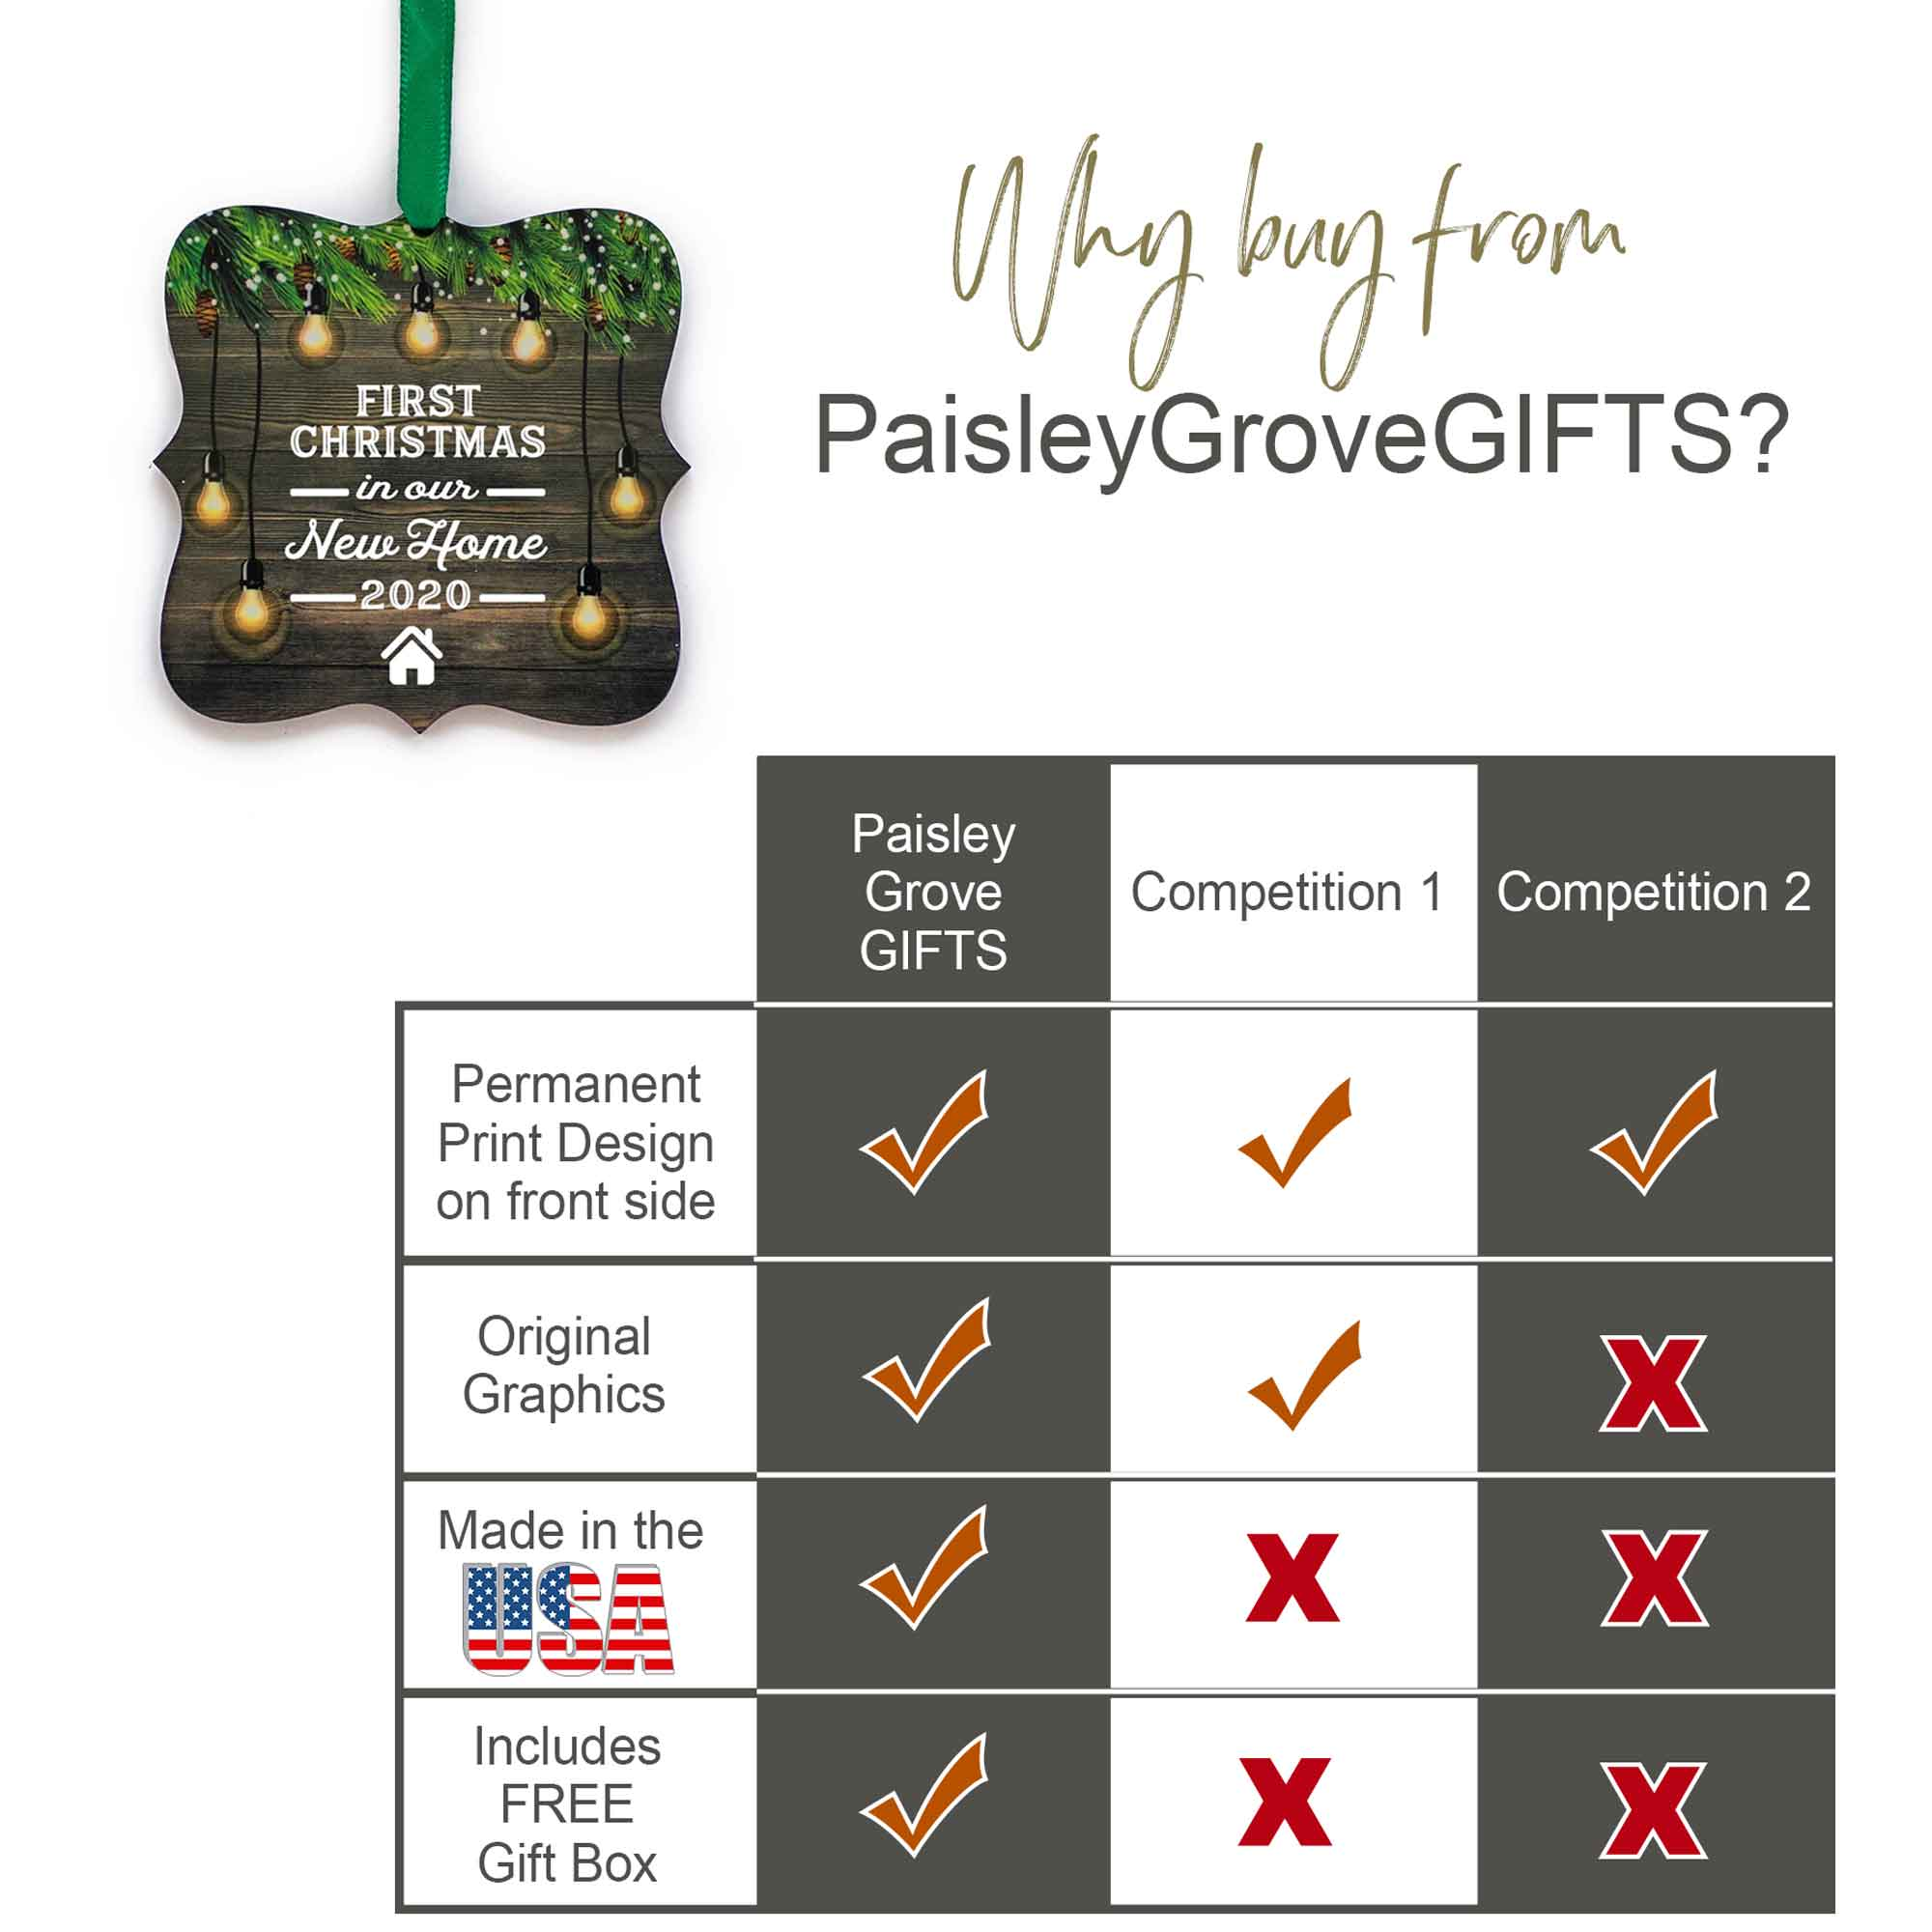 CopyrightPaisleyGroveGIFTS S510m Ornament Superior to Others, Comparison Chart Housewarming Gift Ideas for new Homeowner